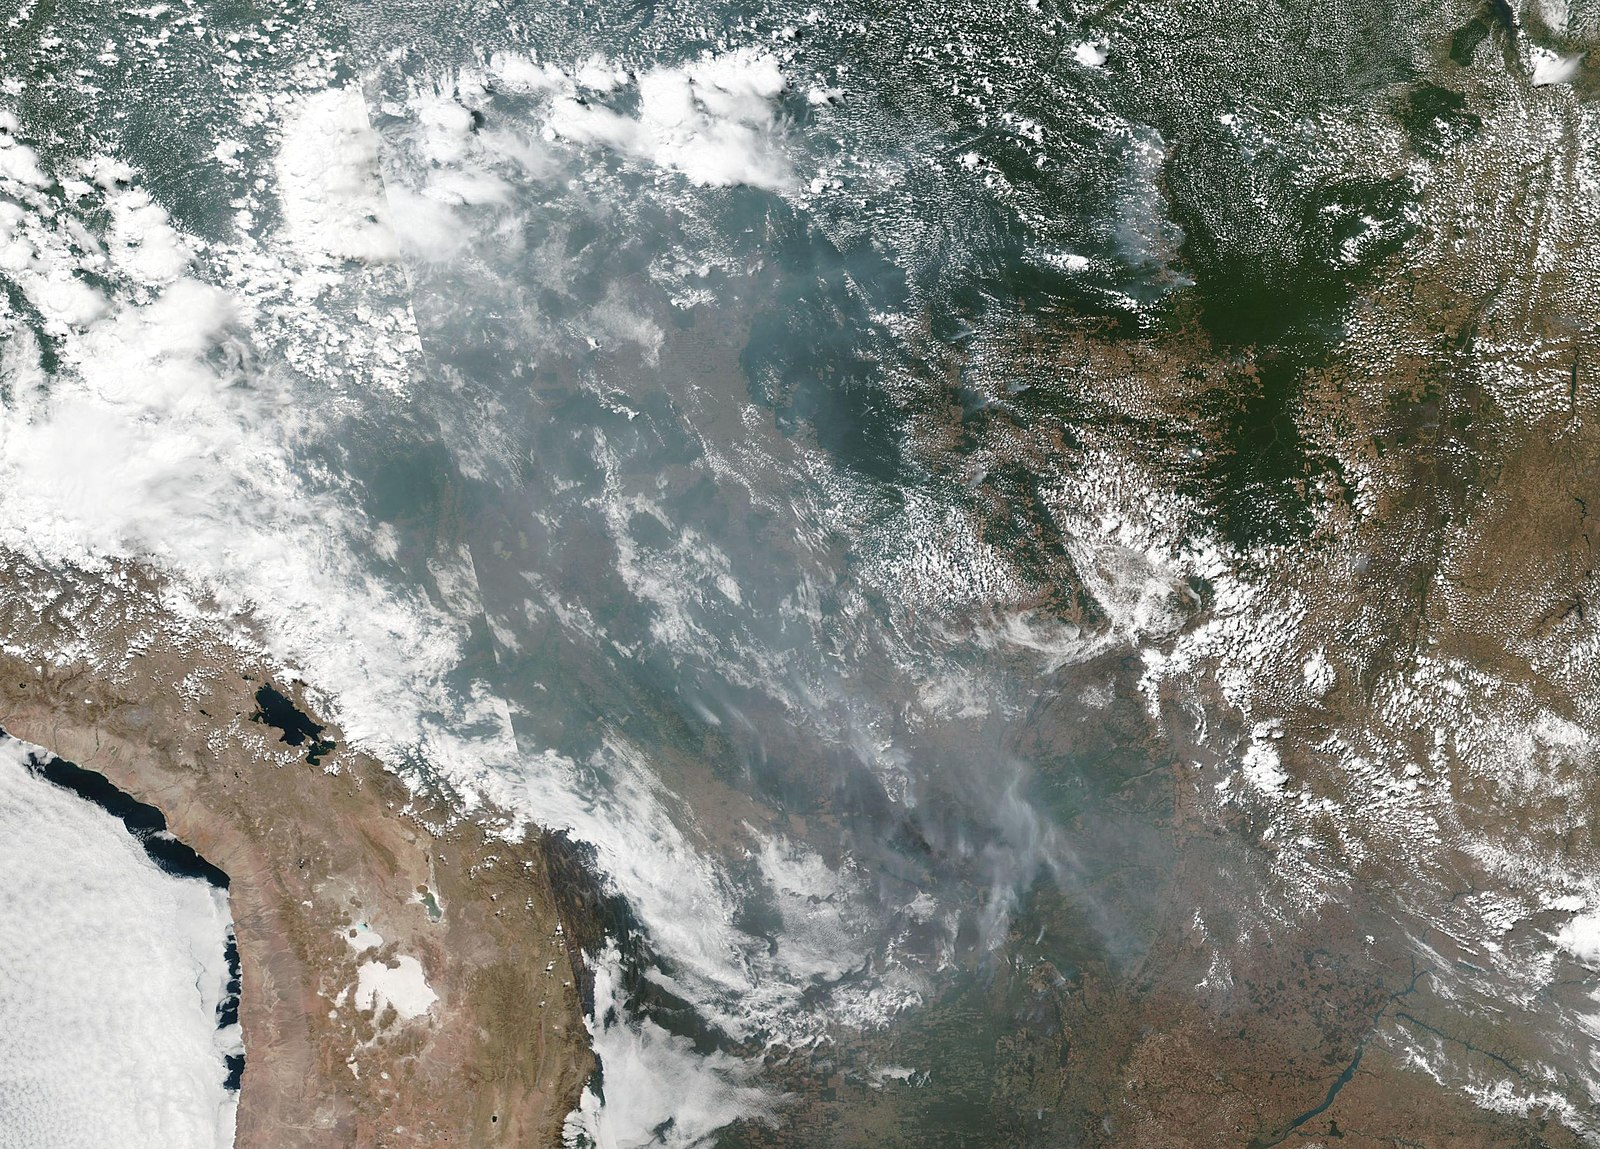 Smoke and fires in several states within Brazil, including Amazonas, Mato Grosso, and Rondônia. Brazil's National Institute for Space Research has detected almost 73,000 fires so far this year, a record. Photo credit: NASA.